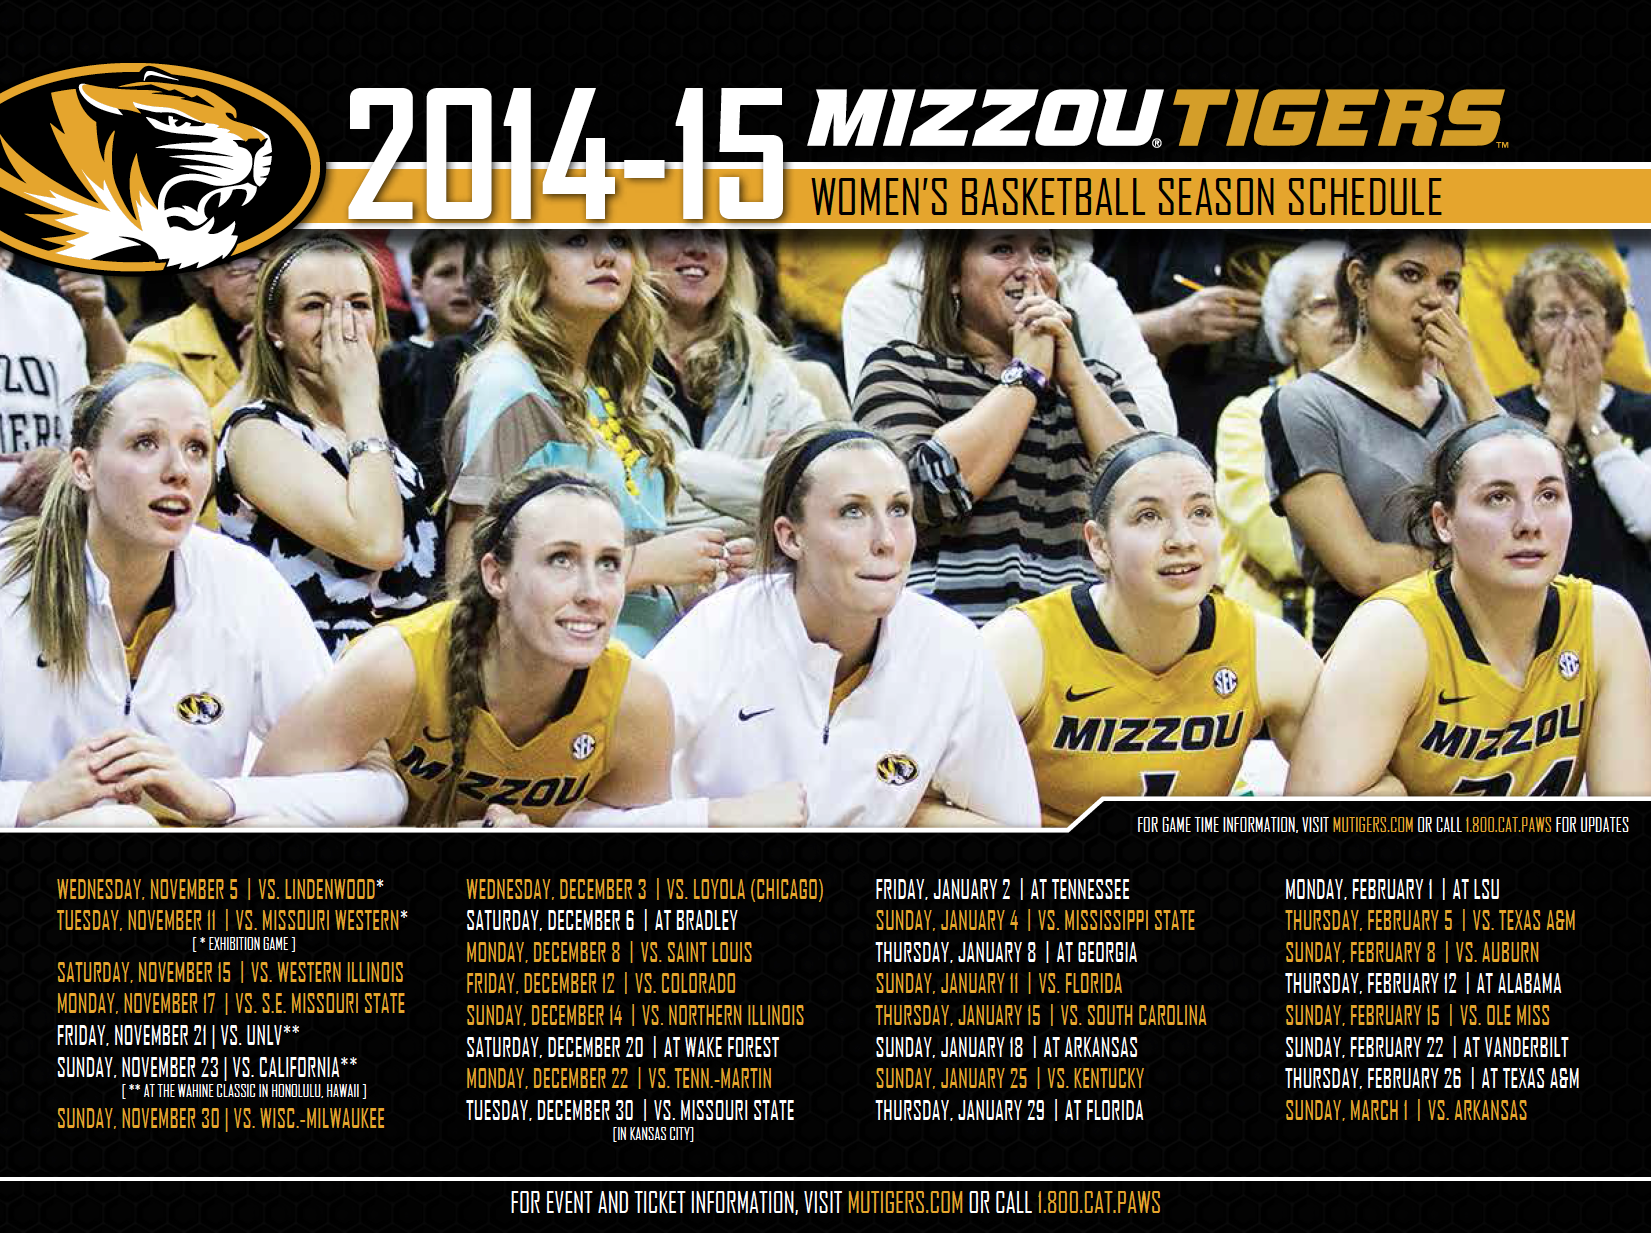 2014-2015 Mizzou Tigers Women's Basketball Season Schedule created and designed by JA Creative Group